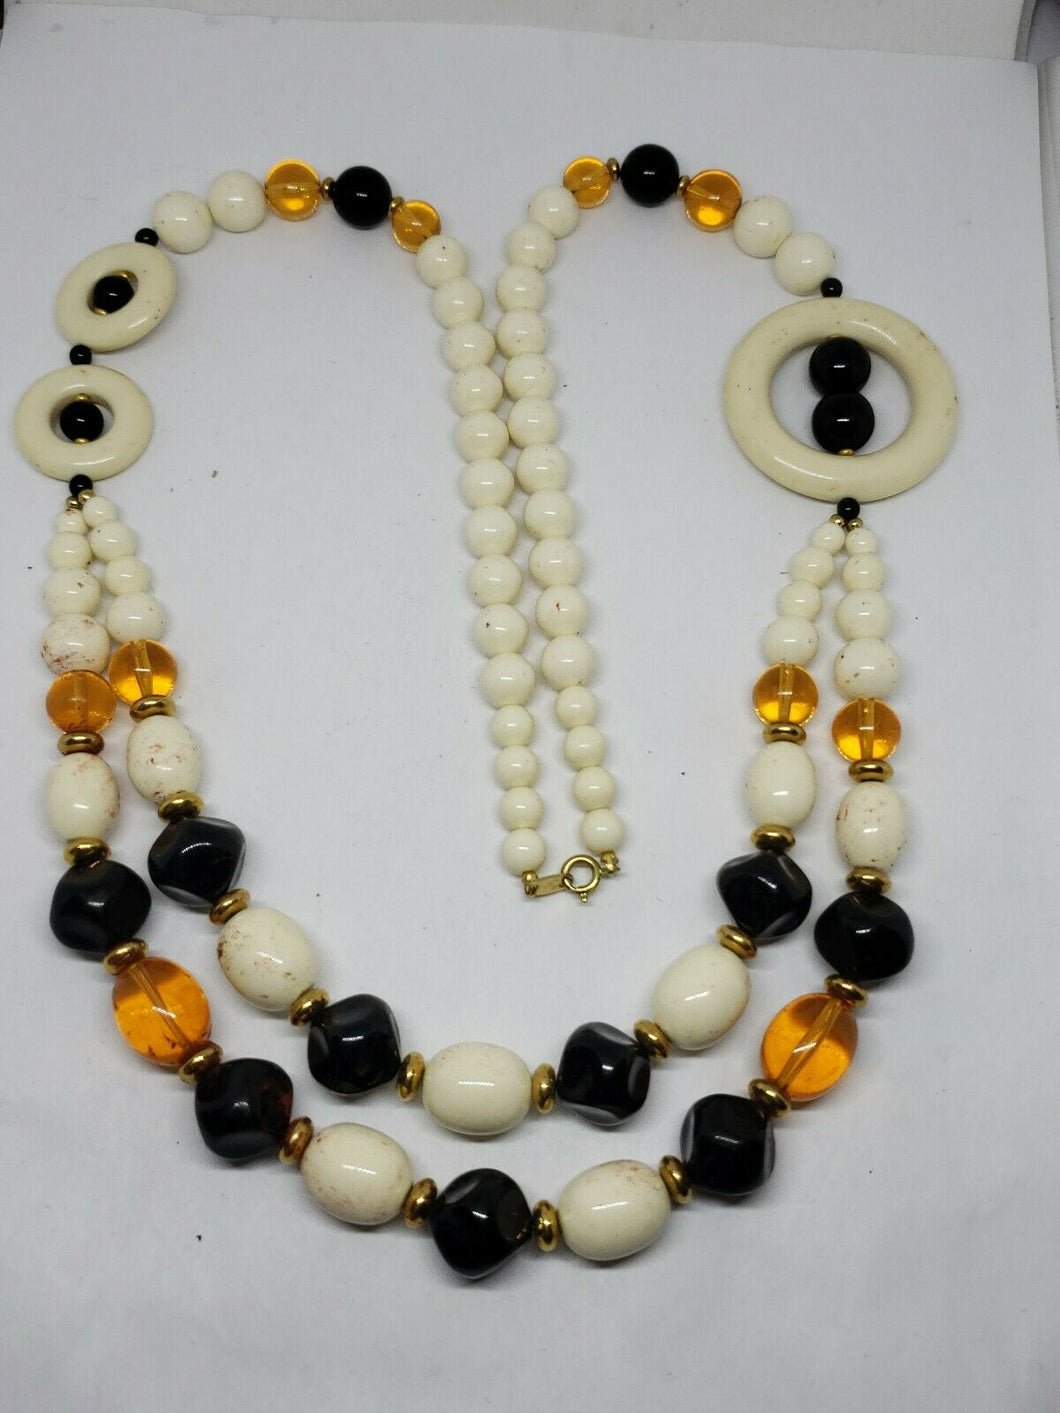 Vintage Trifari Lucite Faux Black Onyx Amber Cream Colored Beaded Necklace 28